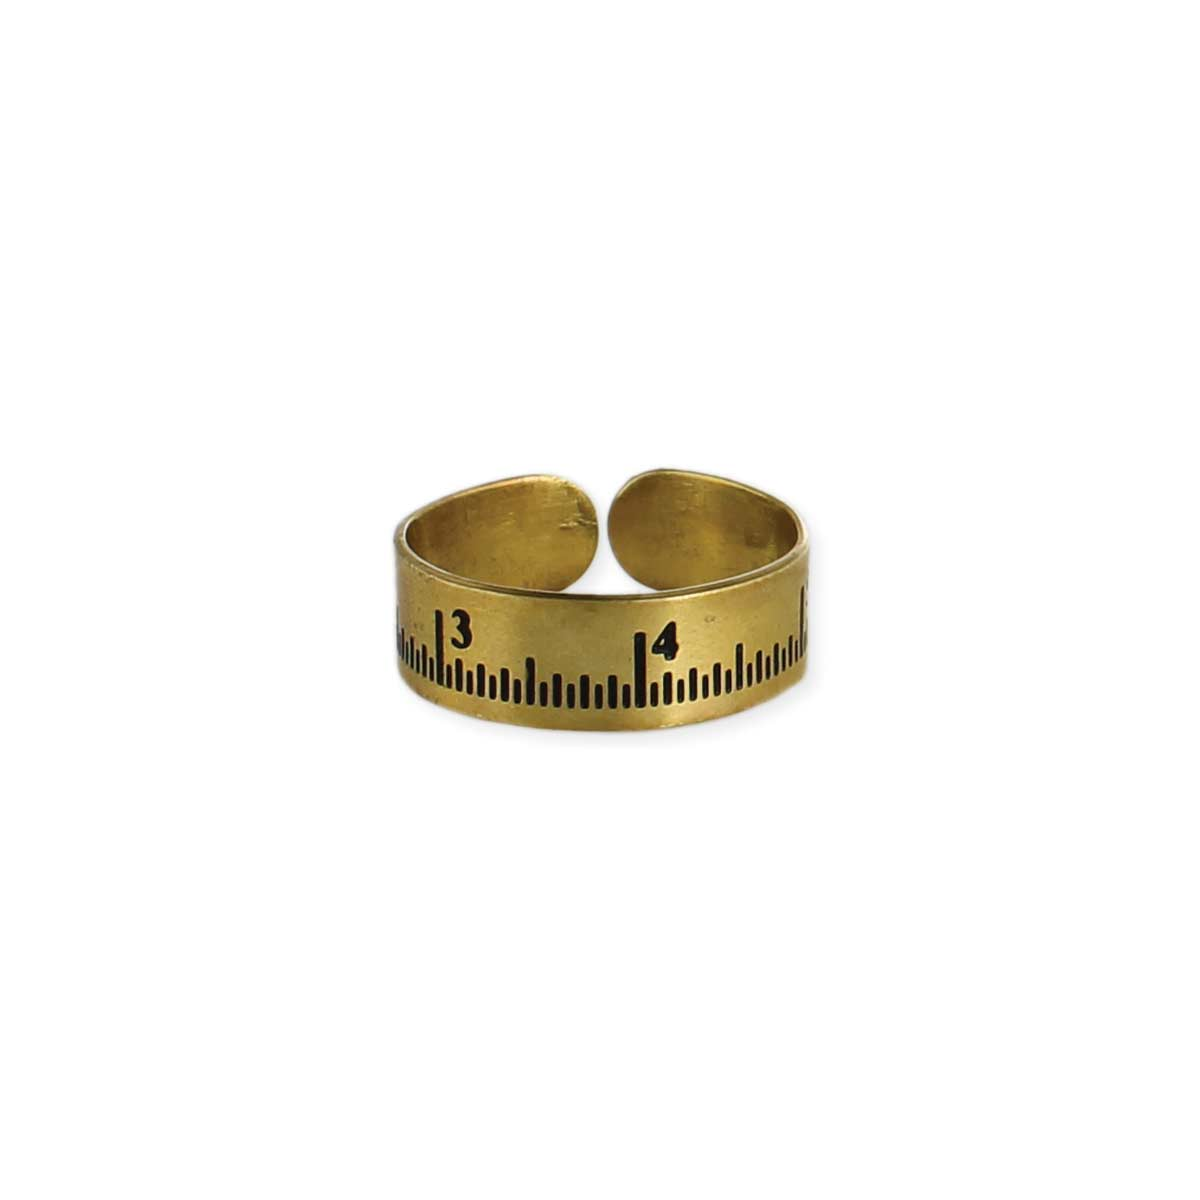 Gold Adjustable Measuring Tape Ring